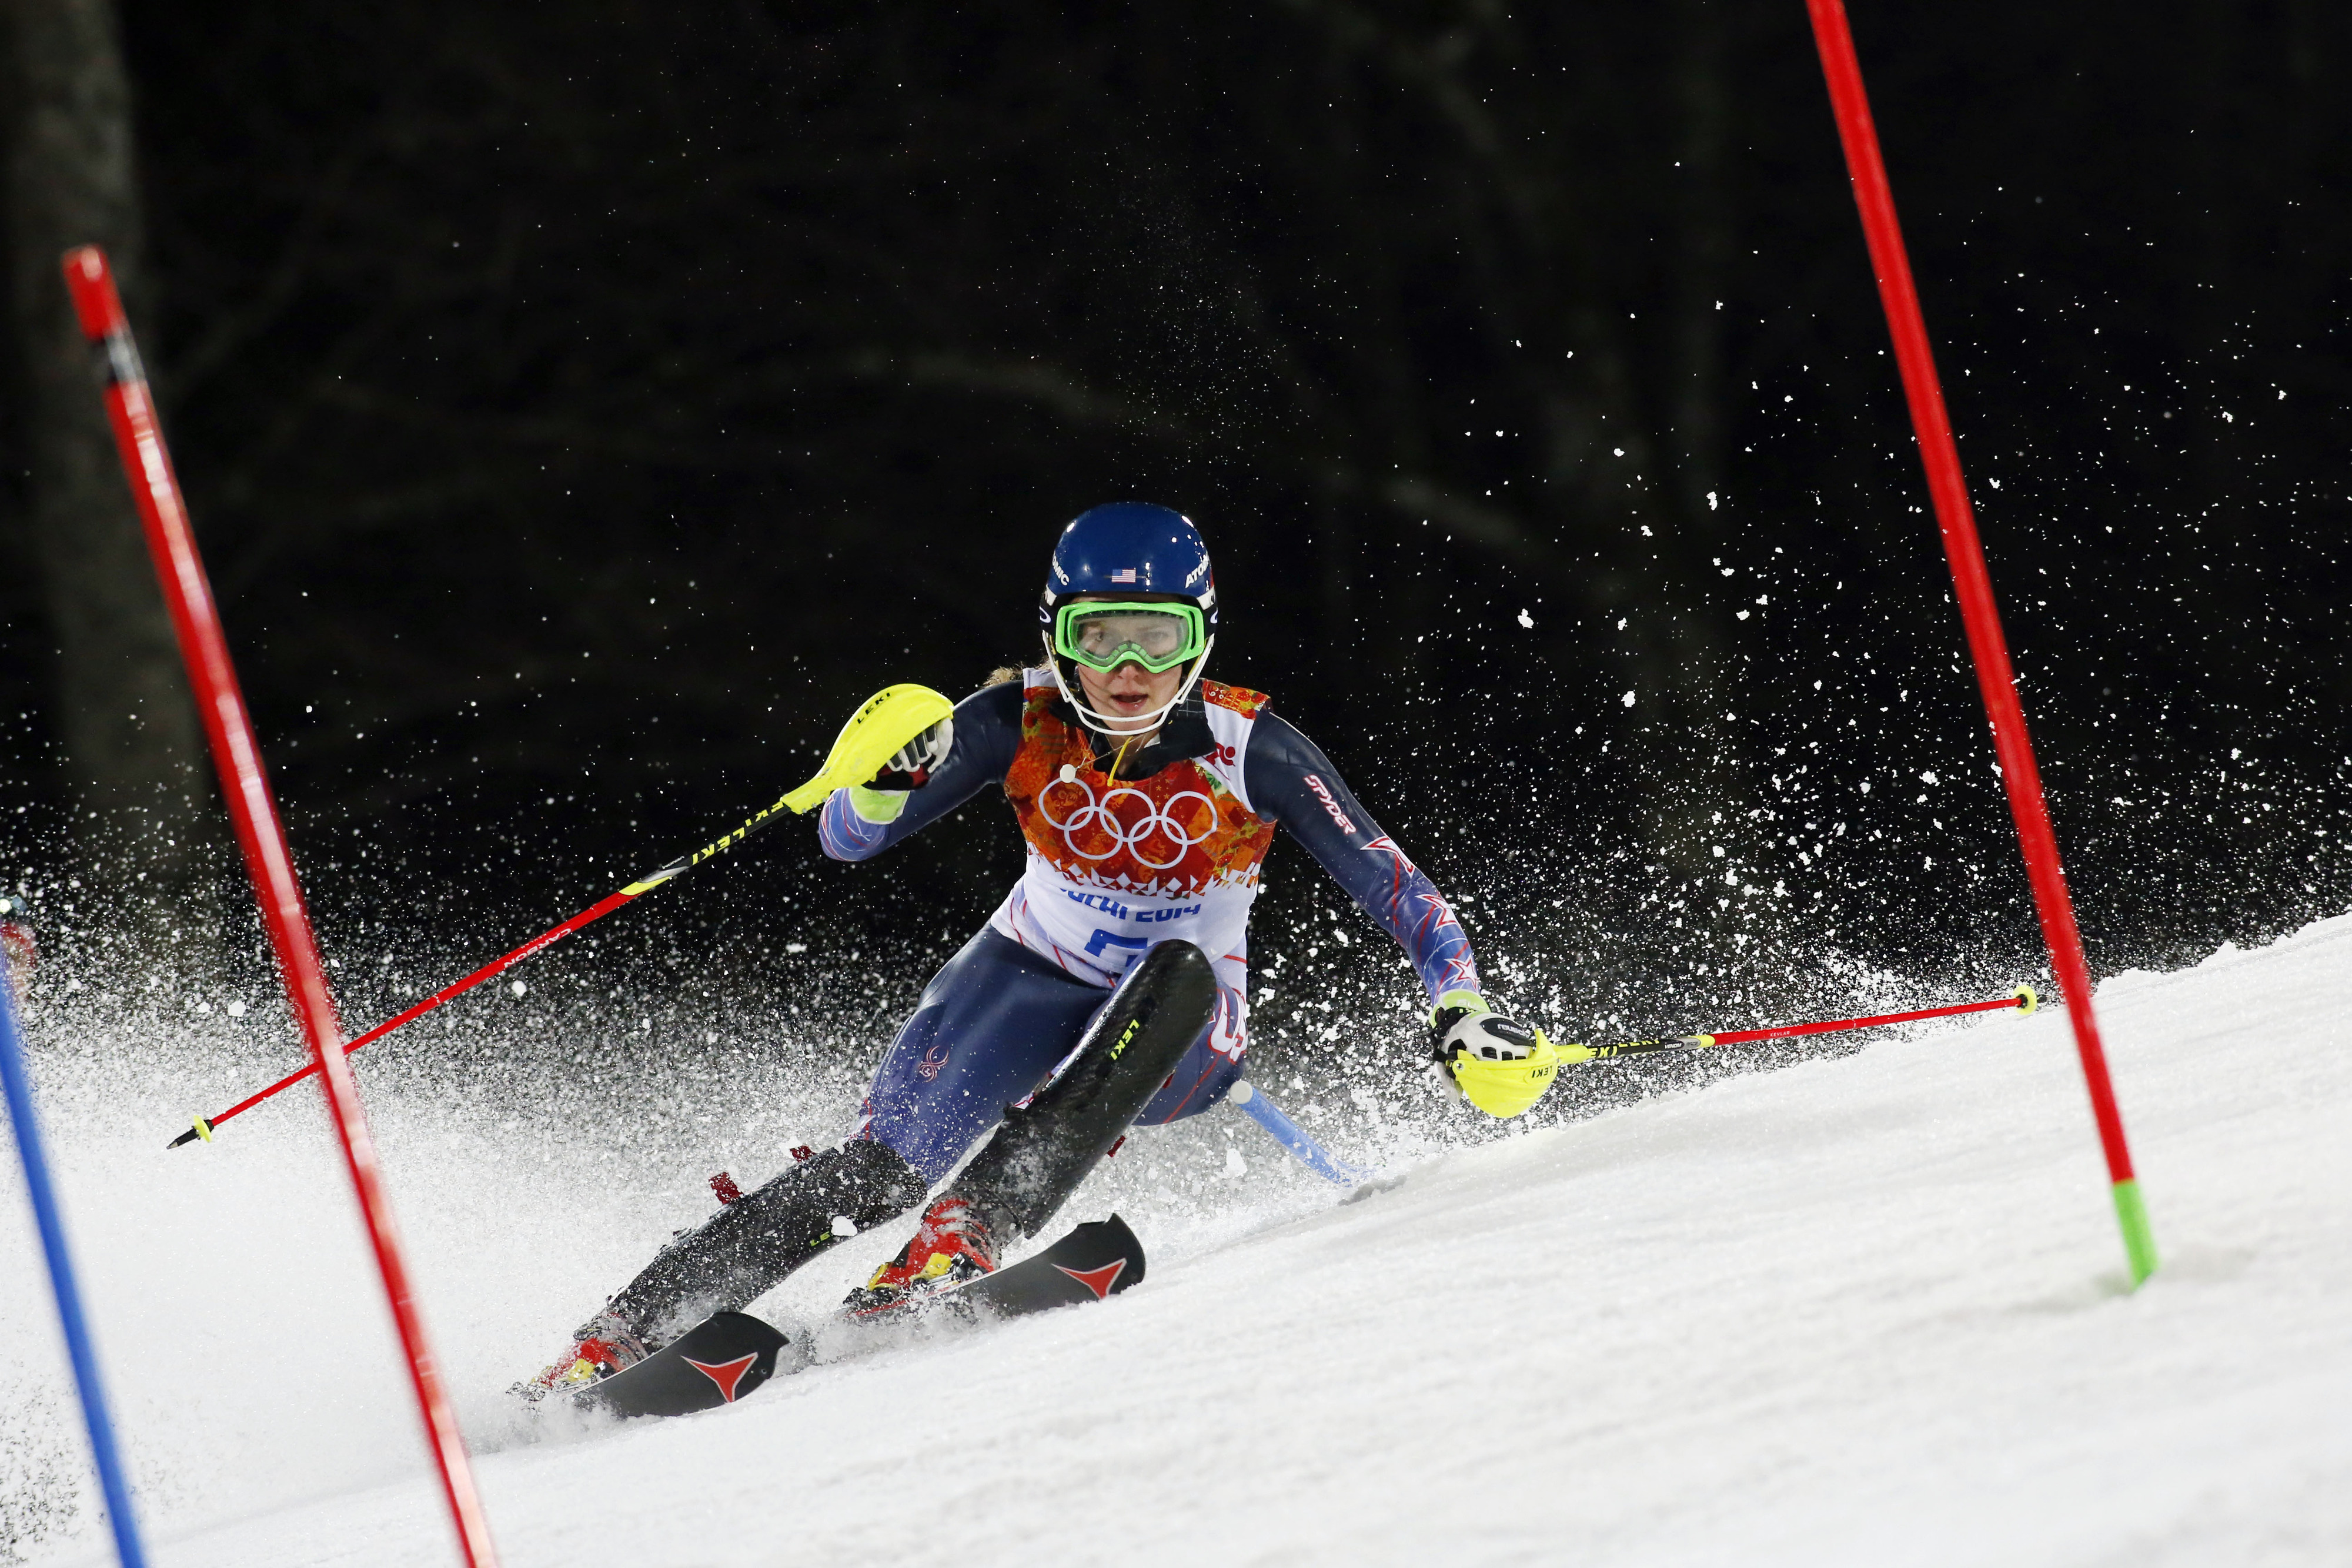 Mikaela Shiffrin added to the USA's gold medal count.